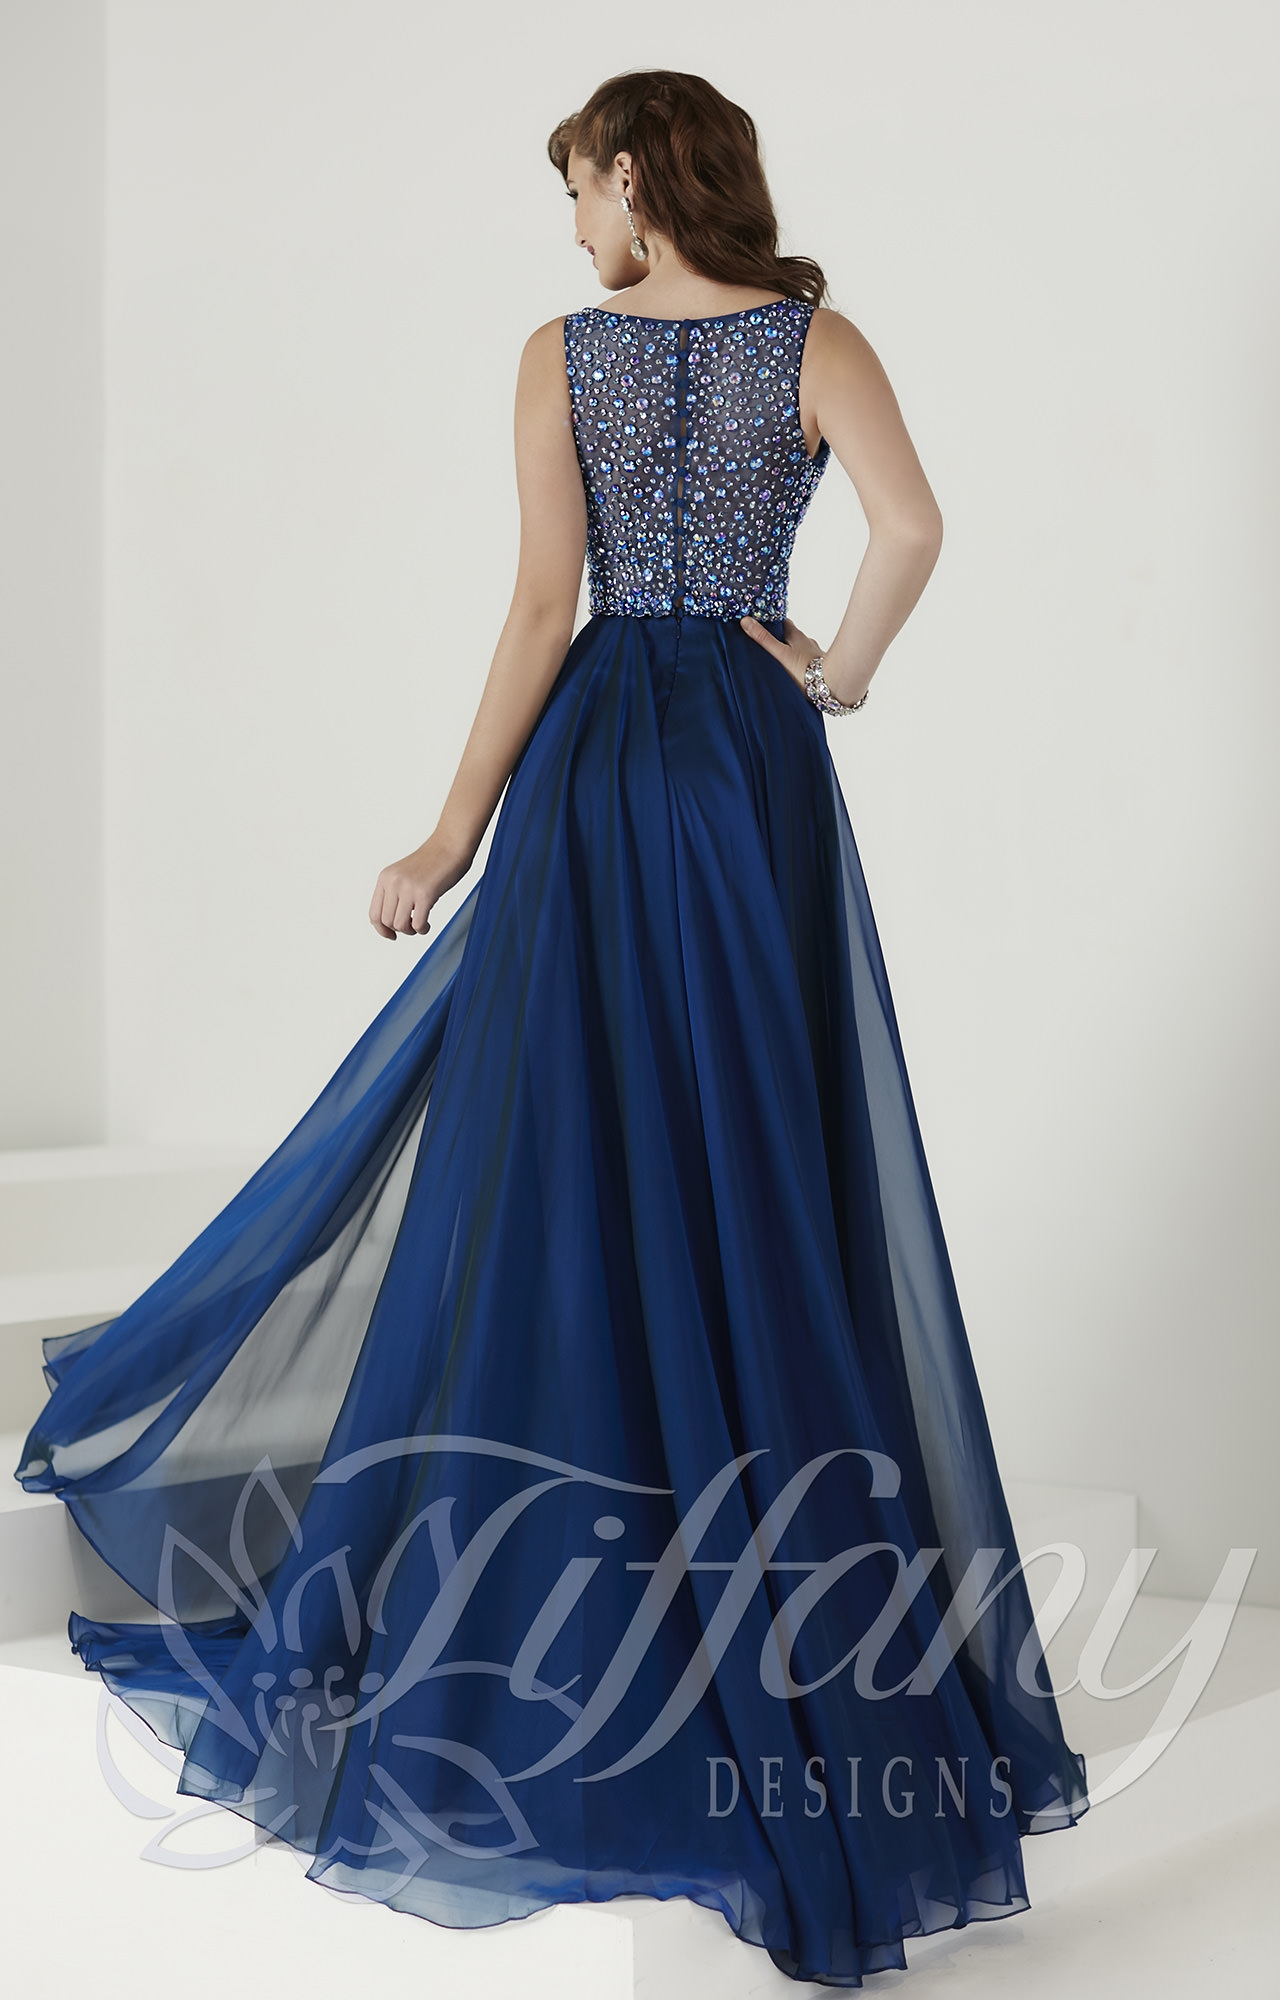 Tiffany Designs 16141 Strut Your Stuff Gown Prom Dress